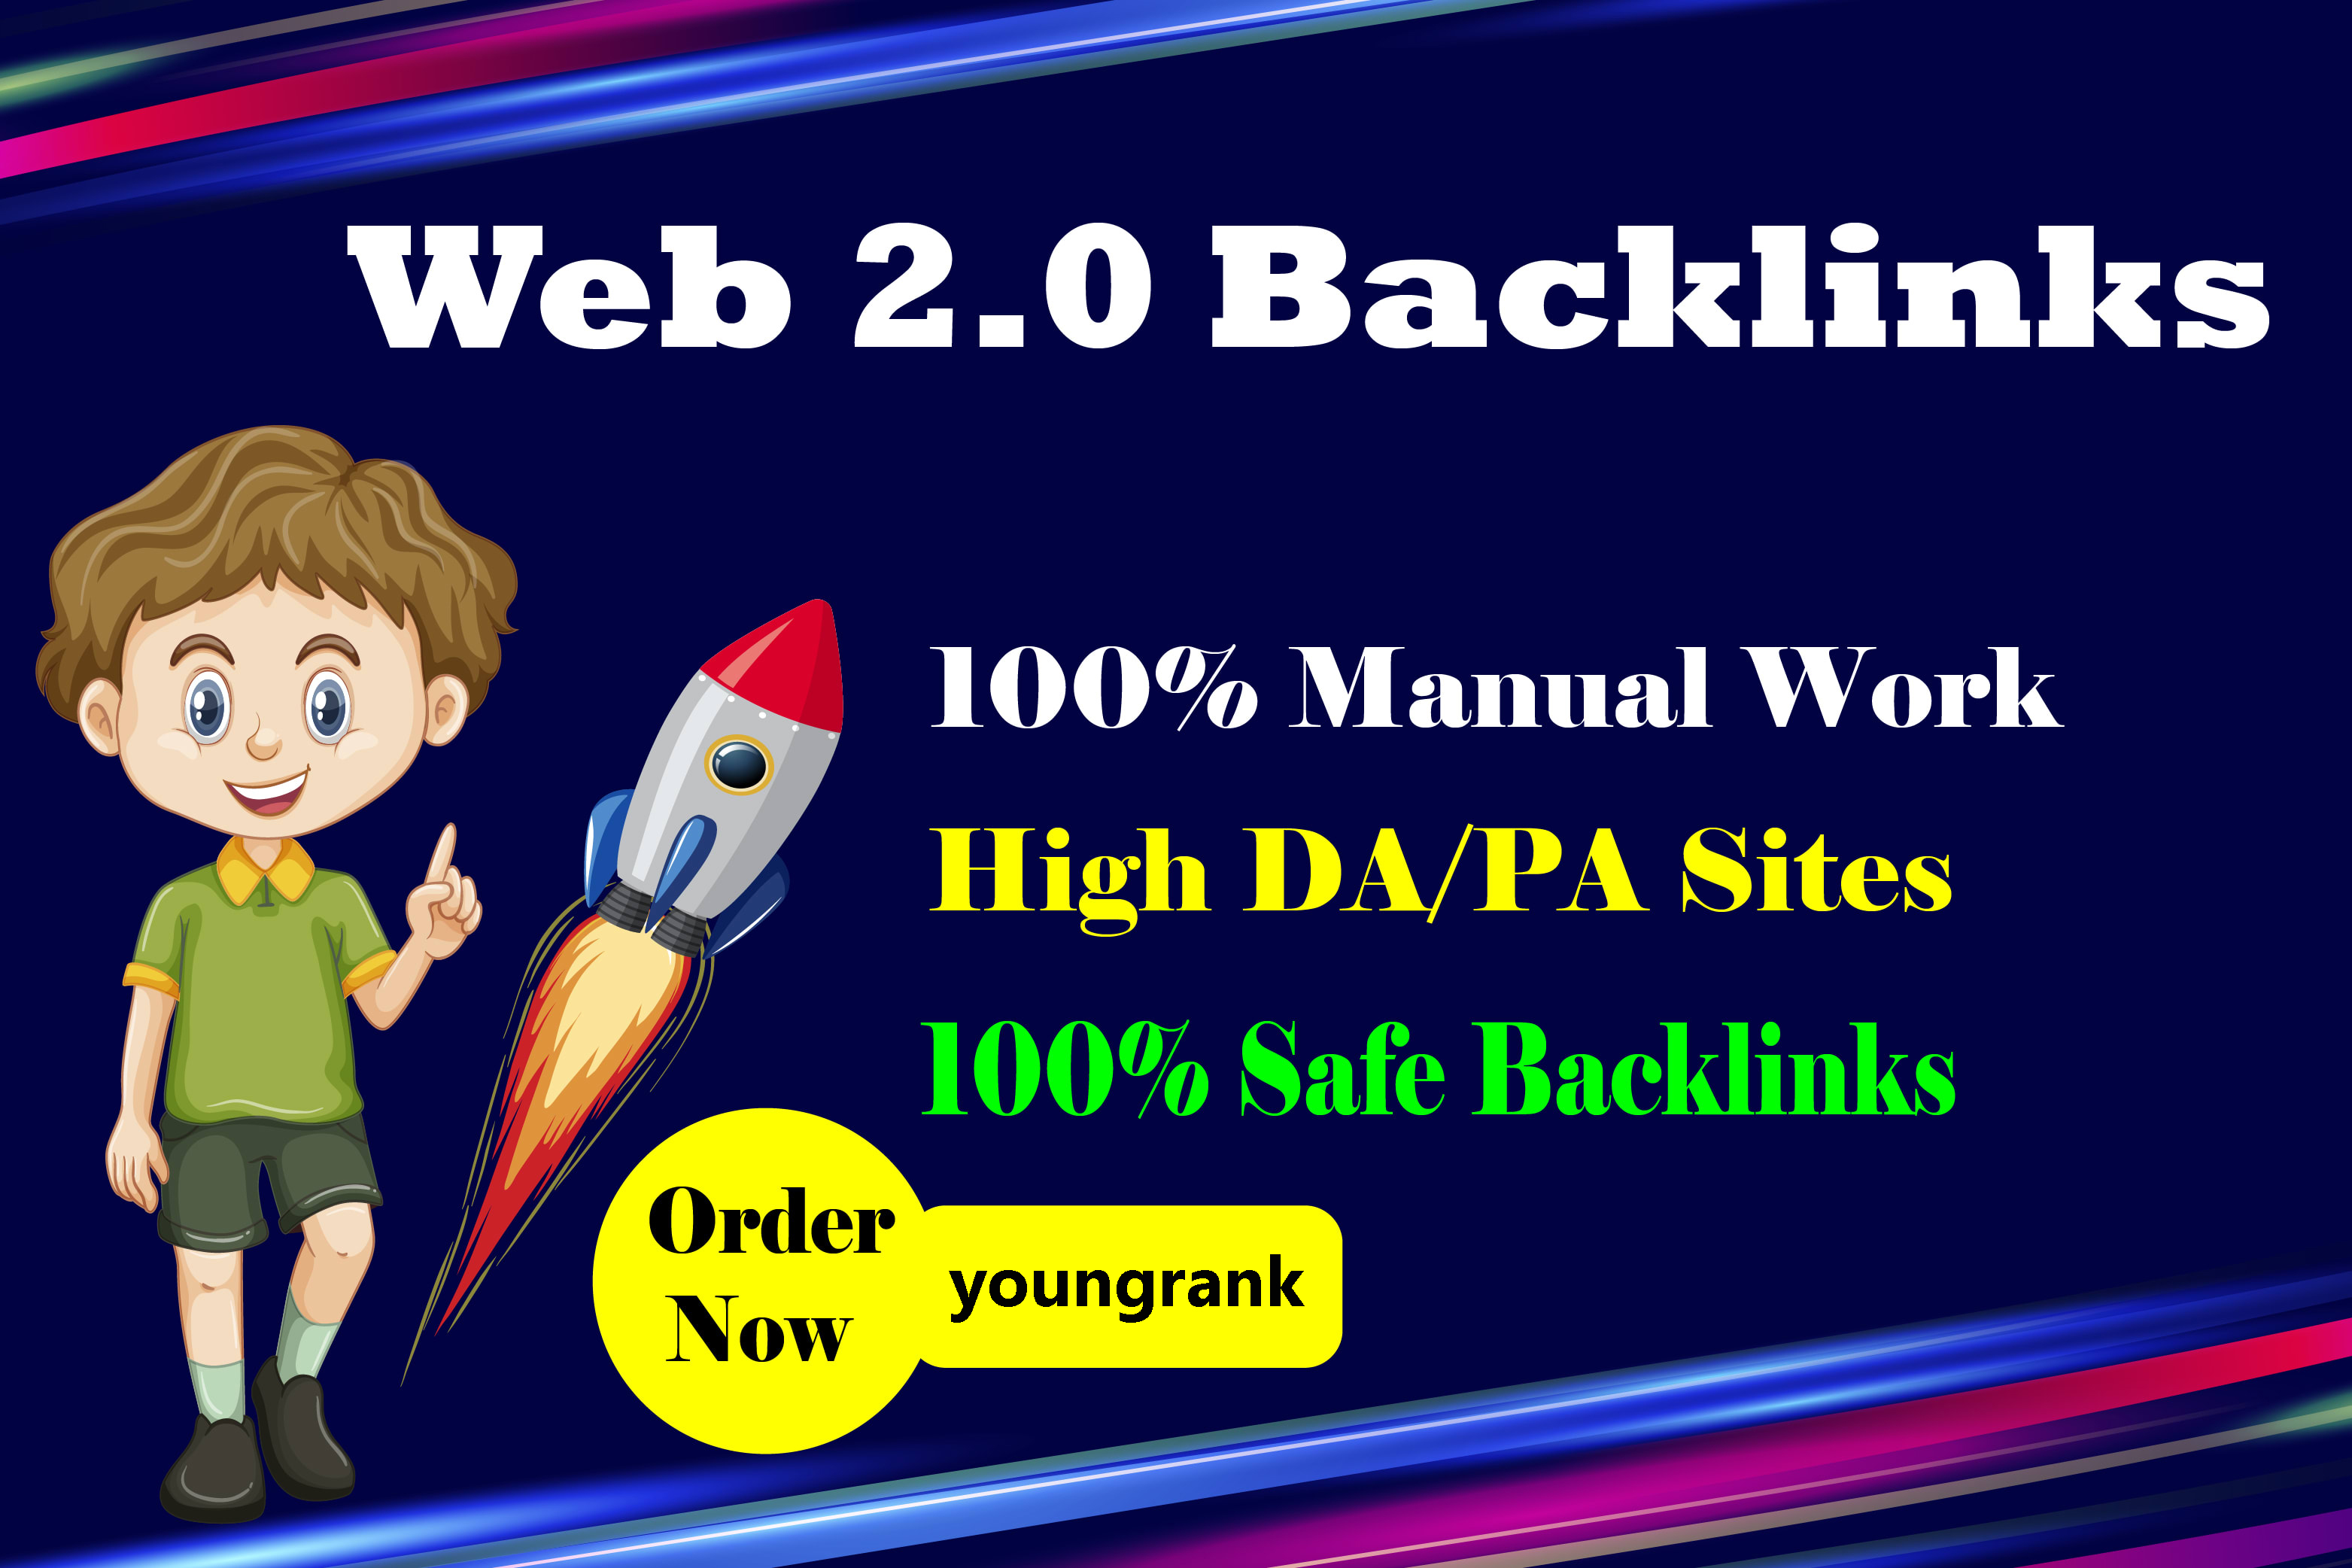 make 800 web 2.0 backlinks from high authority website with login information